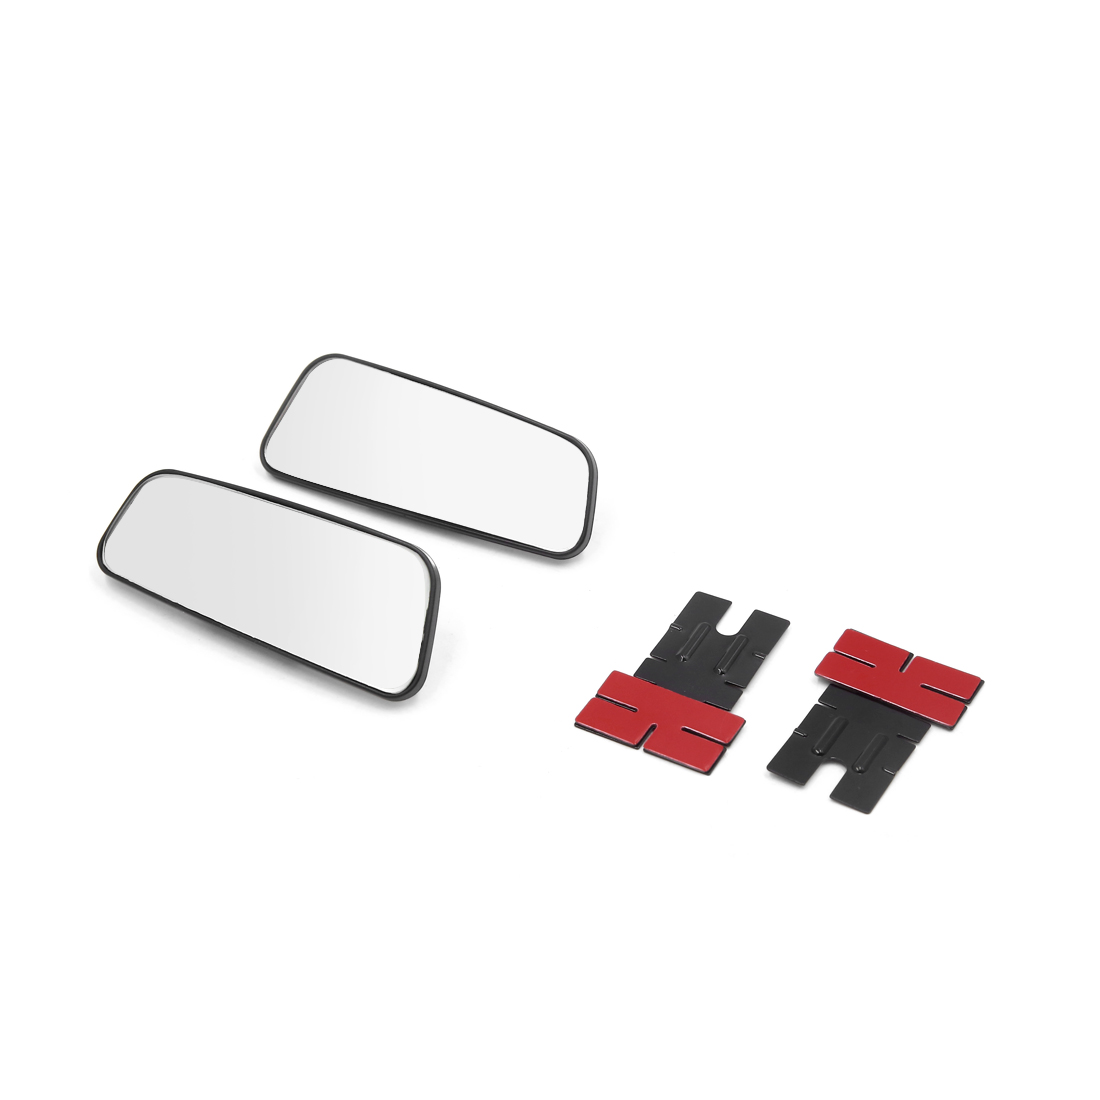 2pcs 360 Degree Wide Angle Rear Side View Auxiliary Blind Spot Mirror for Car - image 3 de 3